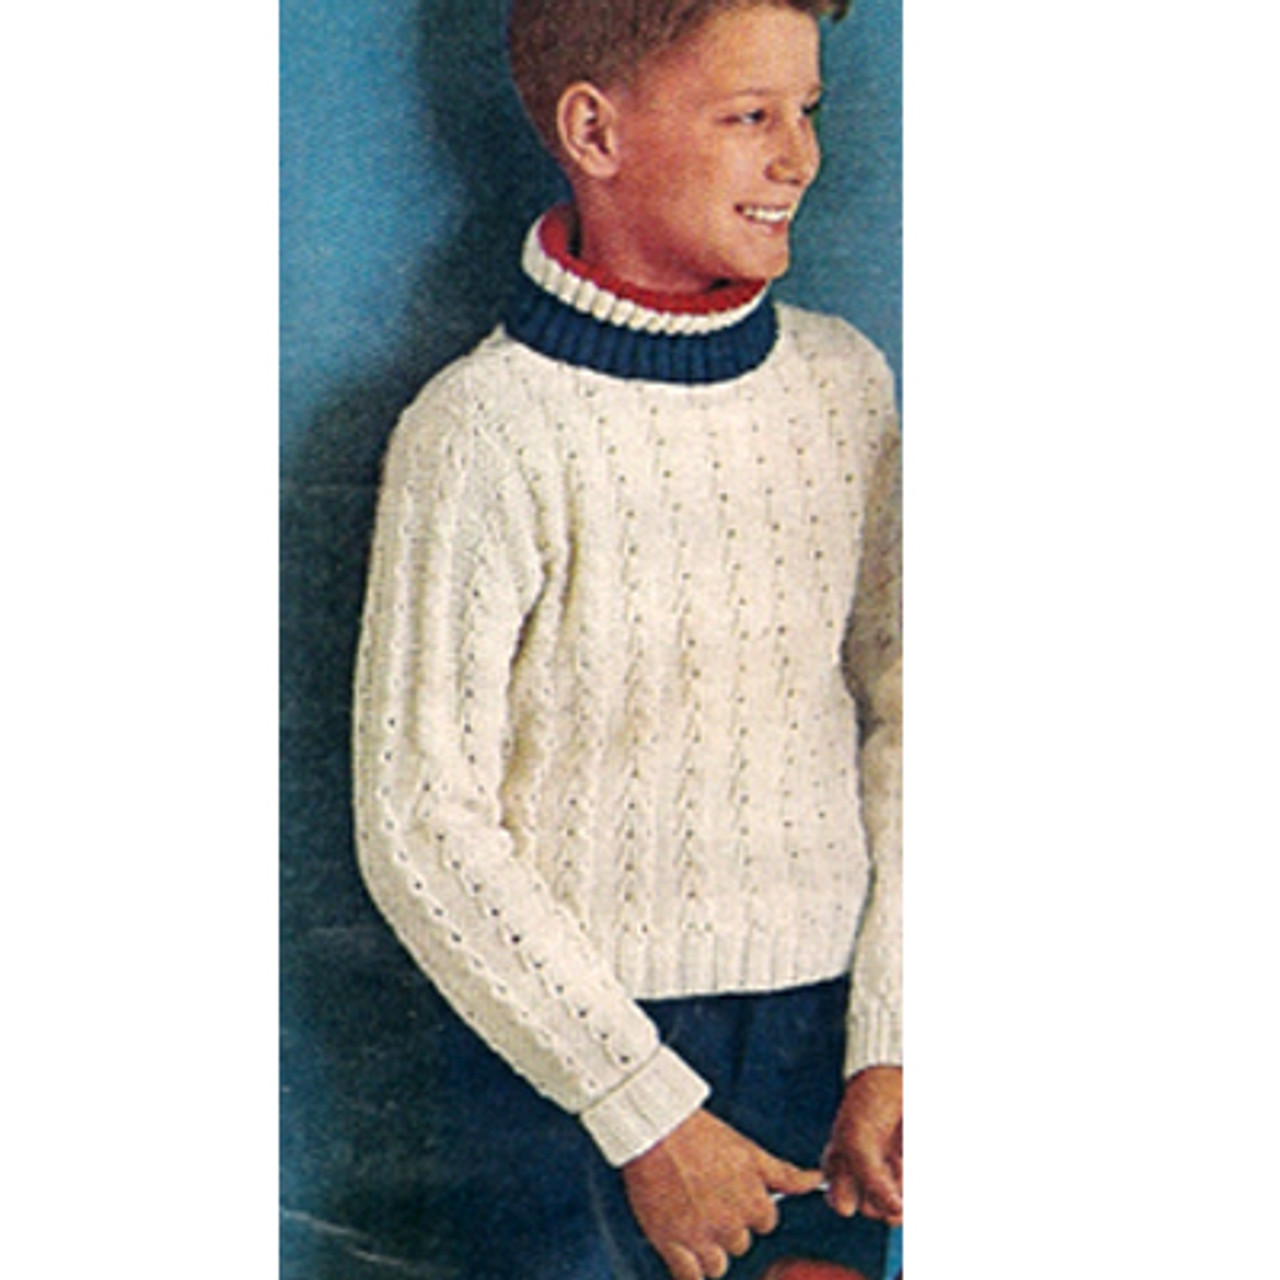 Boys Vintage Knitted Turtleneck Pullover in rib stitch